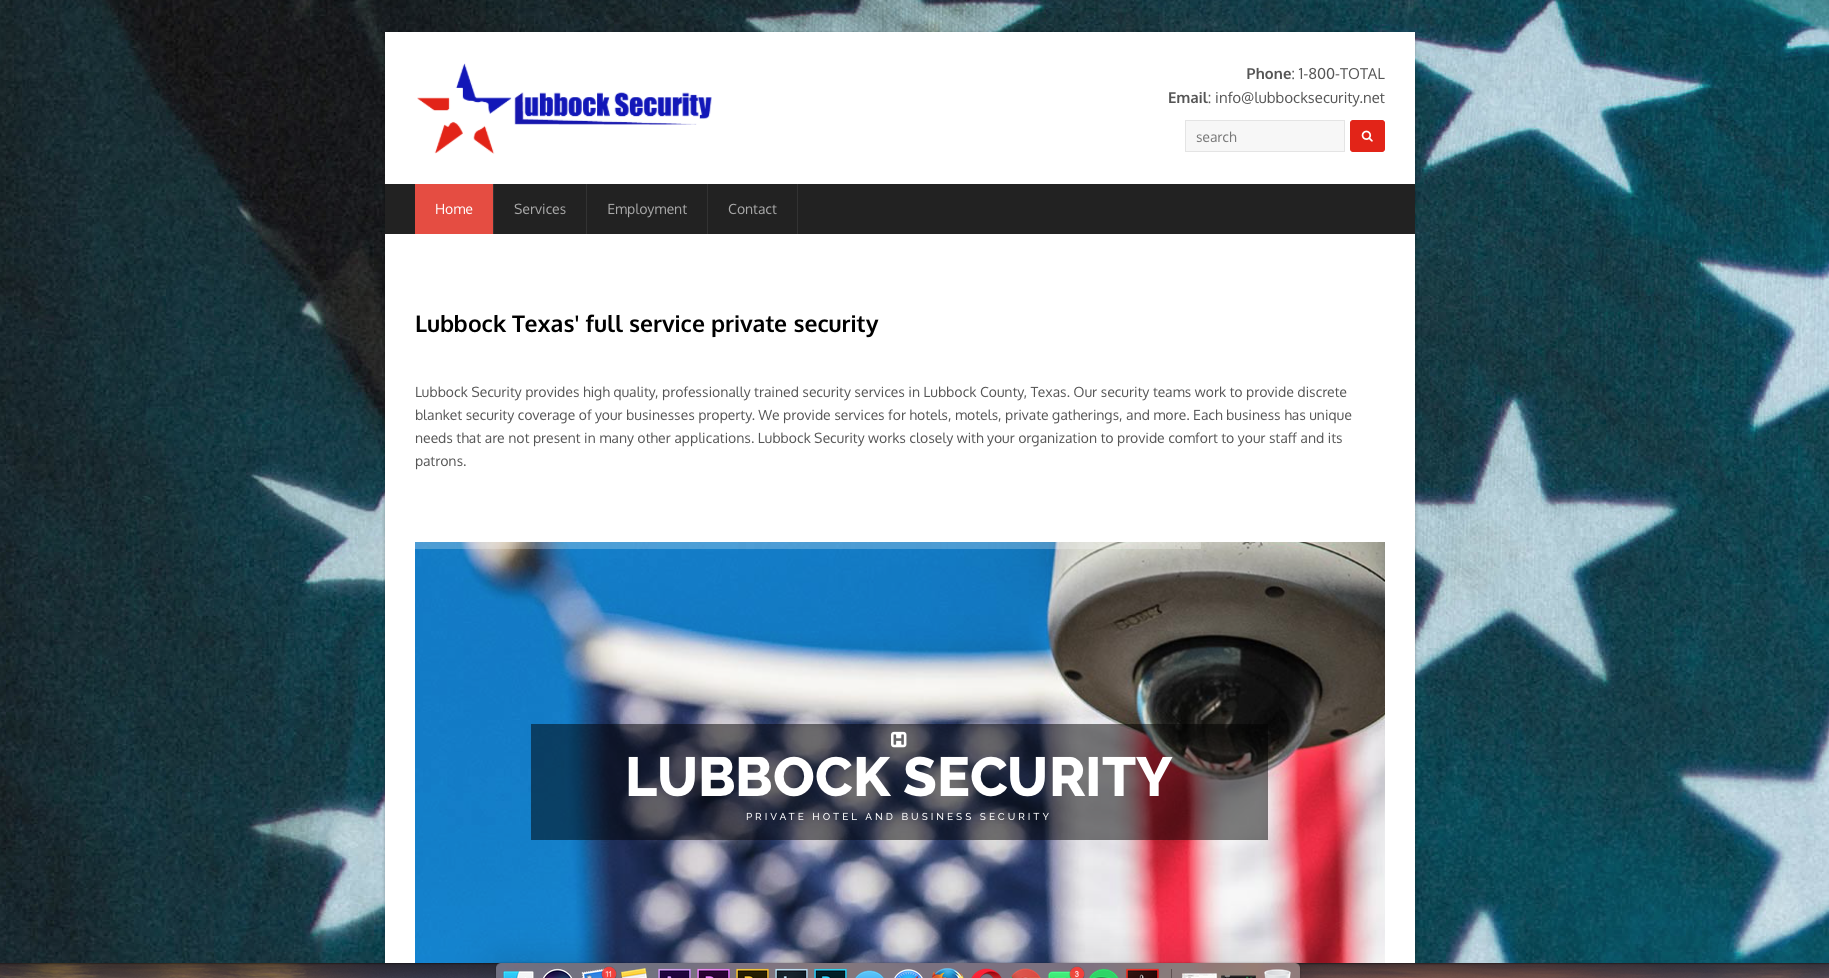 lubbocksecurity.net